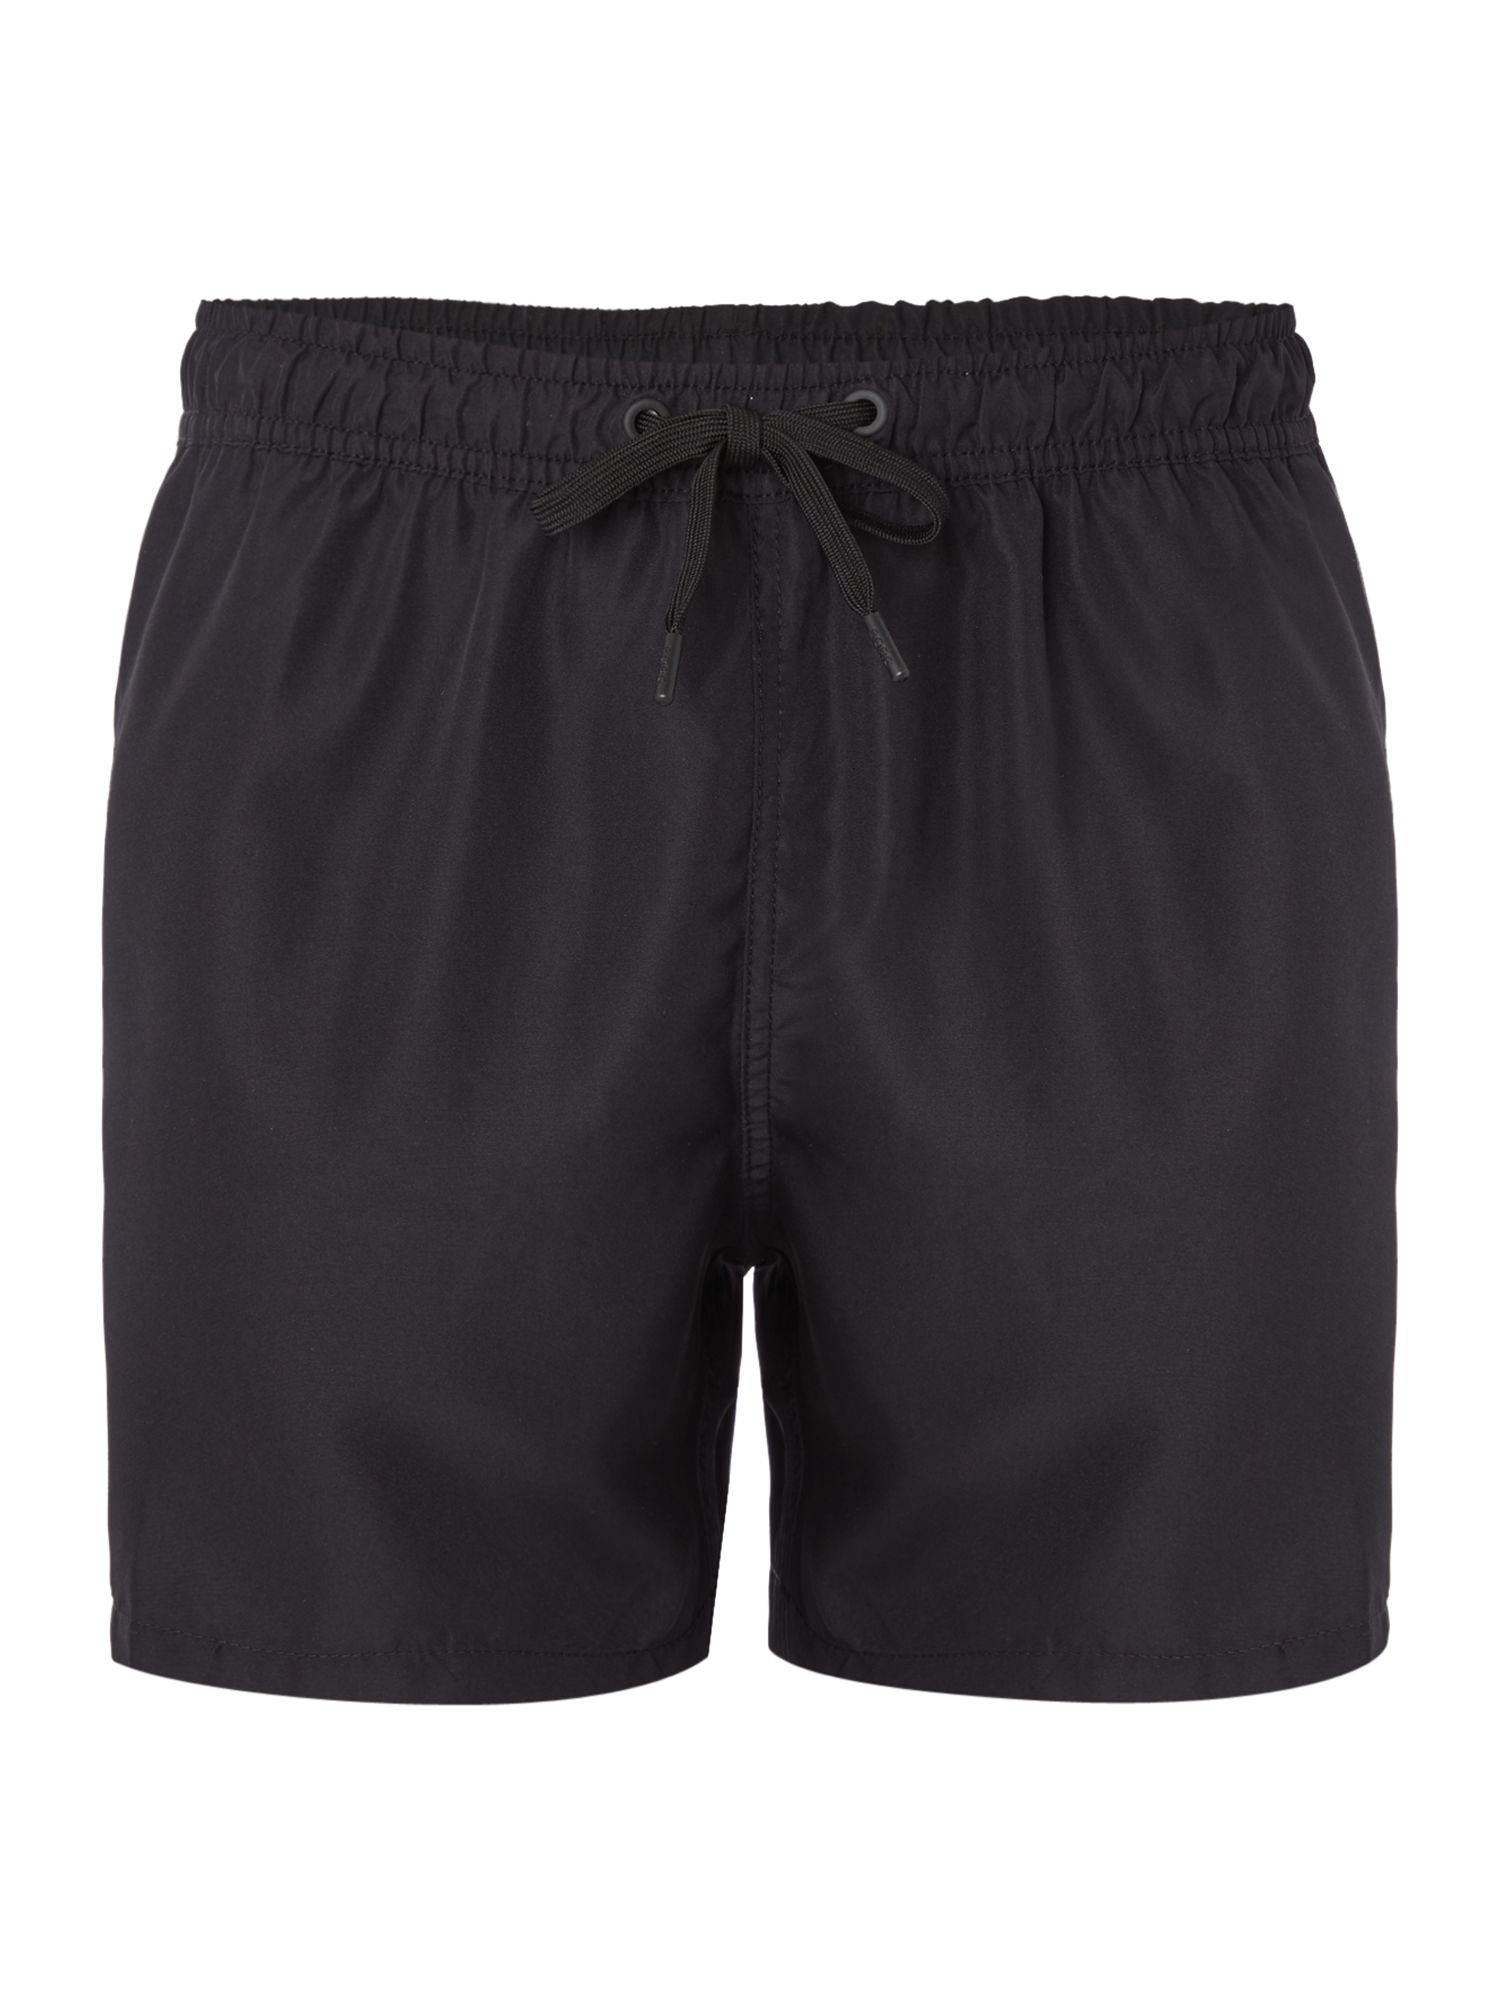 Men's Bjorn Borg Solid Mid Swim Shorts With Logo, Black